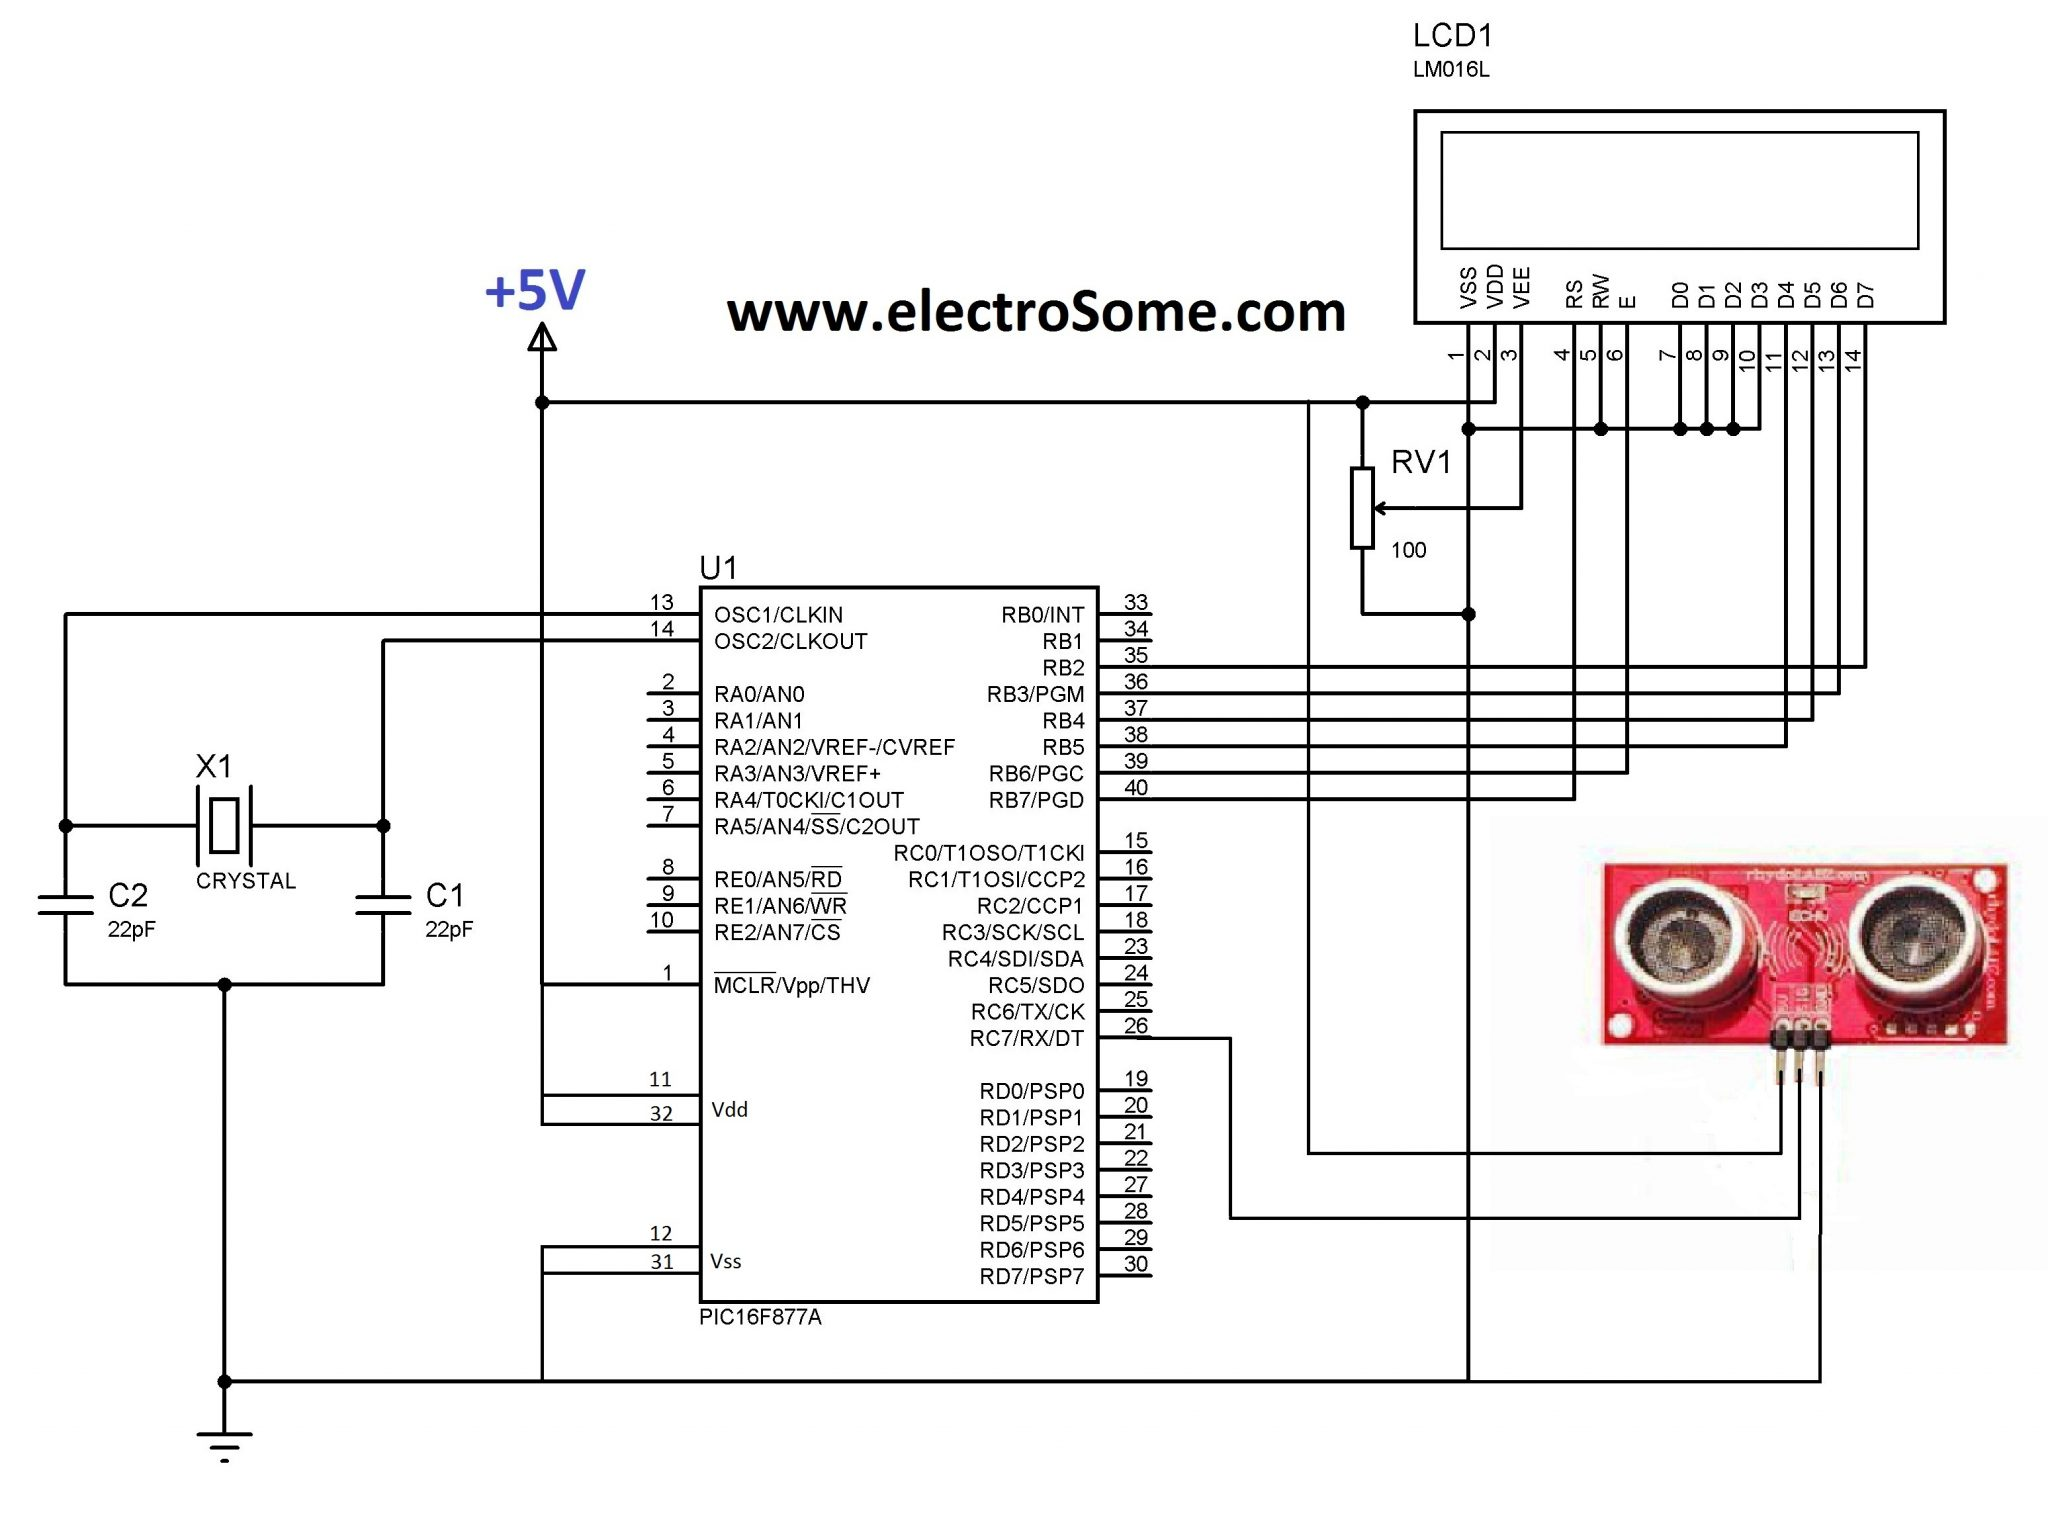 Interfacing Ultrasonic Distance Sensor Ascii With Pic Microcontroller Schematic Of Rain Circuit Diagram Sensors